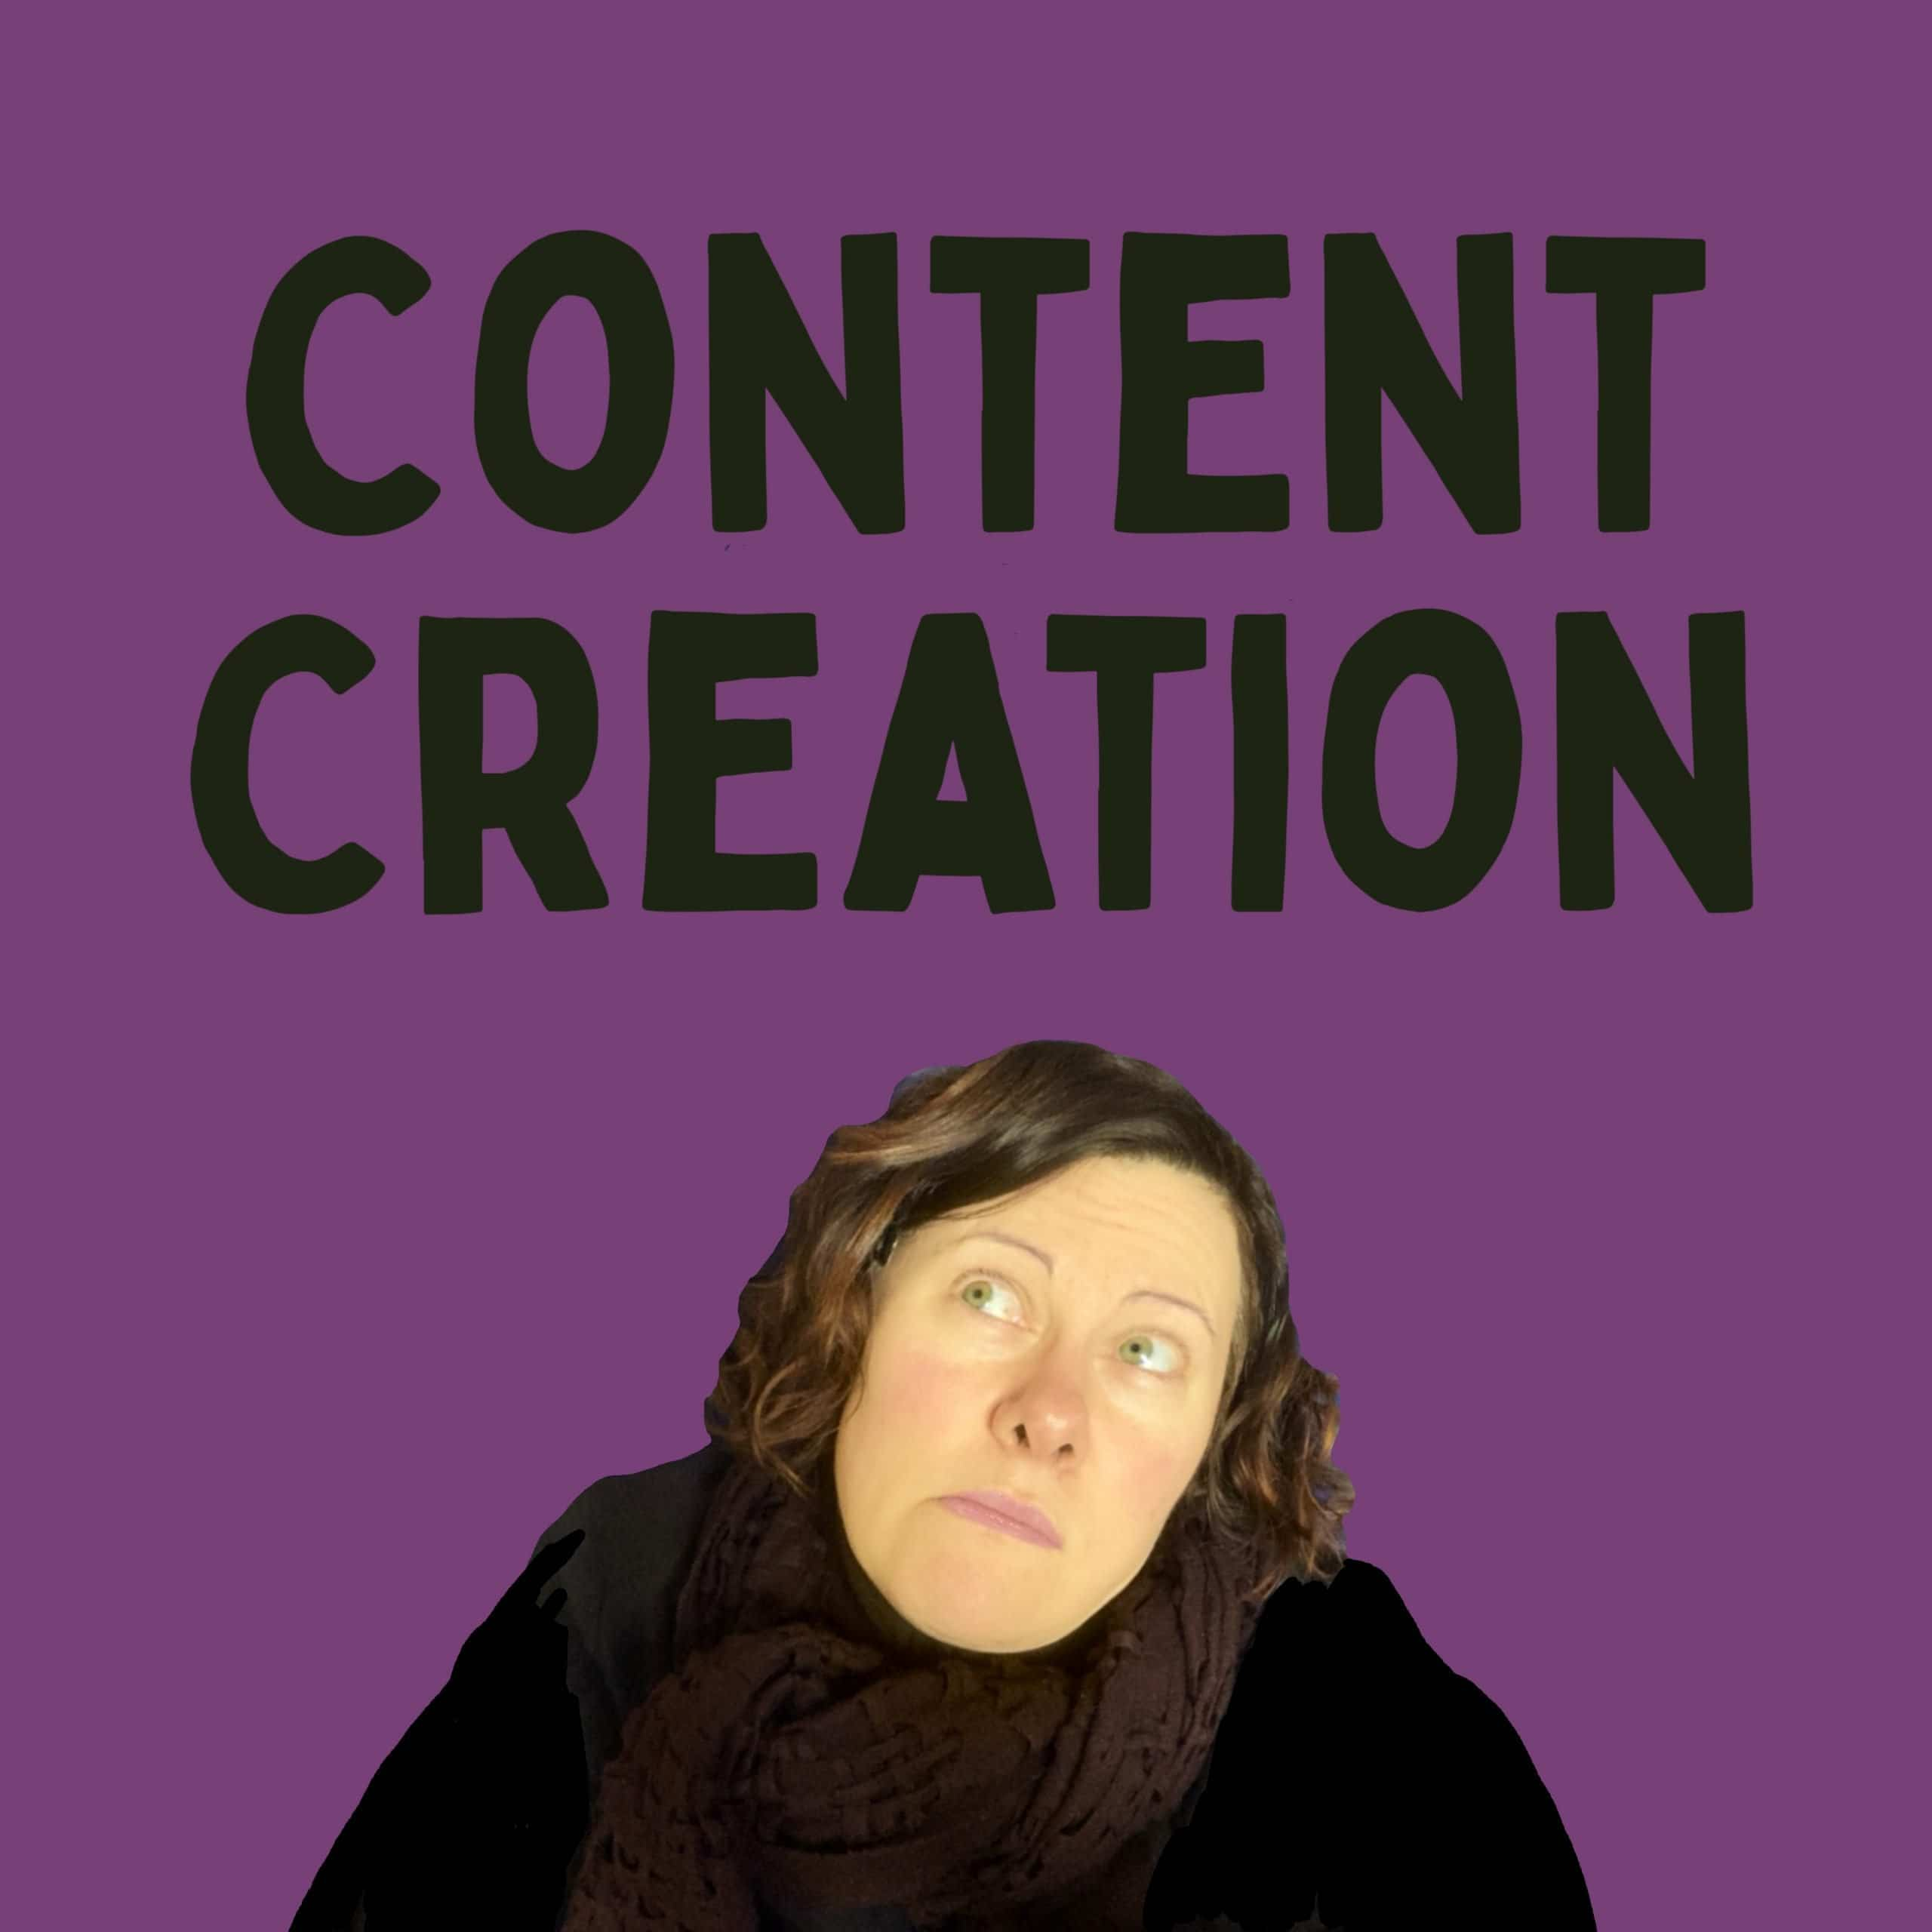 small business owner dreads content creation